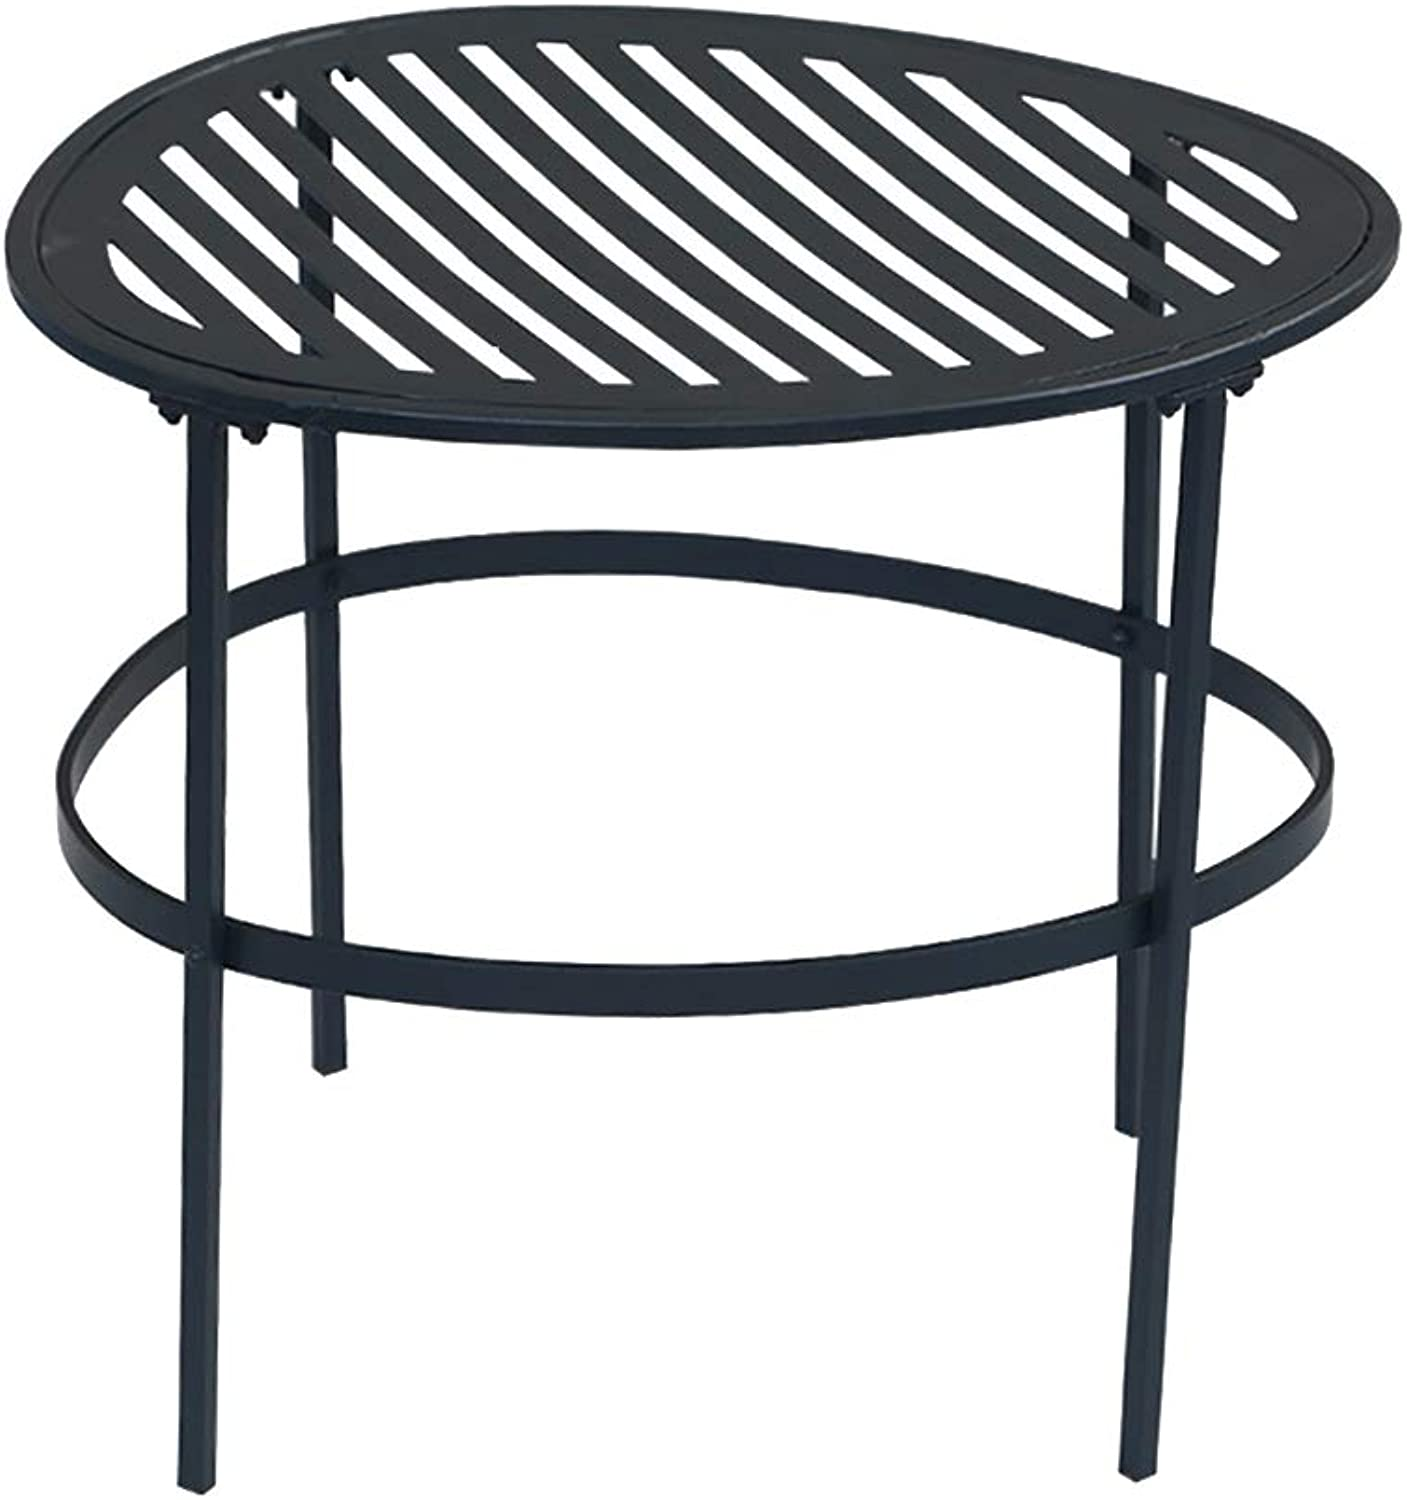 Detachable Small Coffee Table, Nordic Minimalist Style Leisure Table - Iron Round Table - Home Decoration Metal Flower Stand